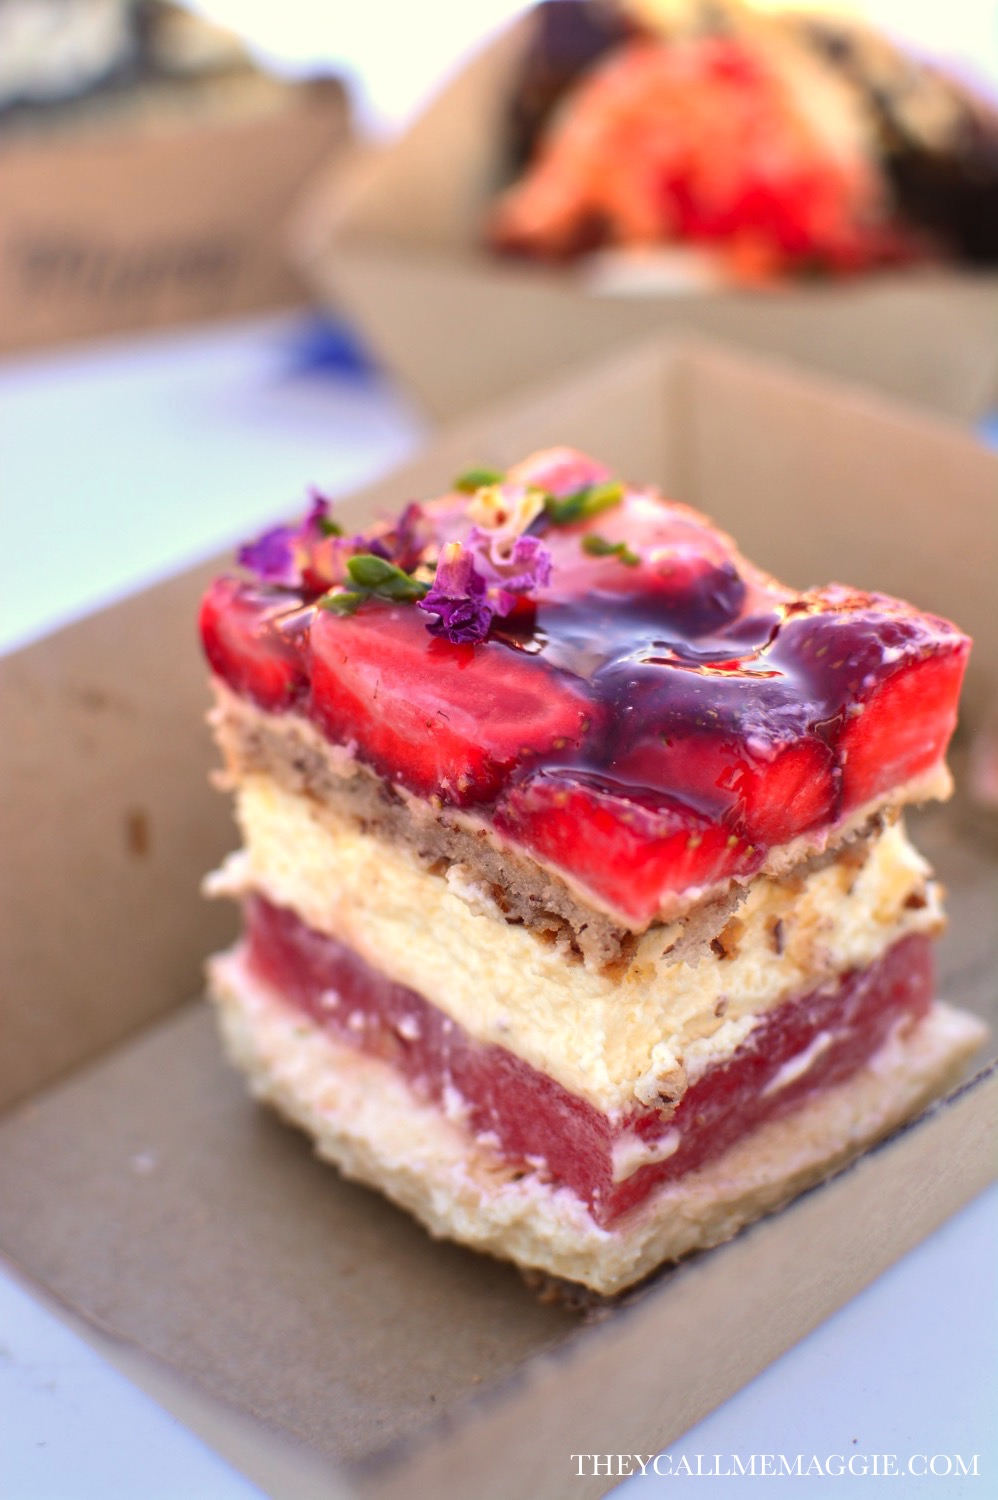 Black Star Pastry's famed strawberry watermelon cake.Come to Melbourne already!